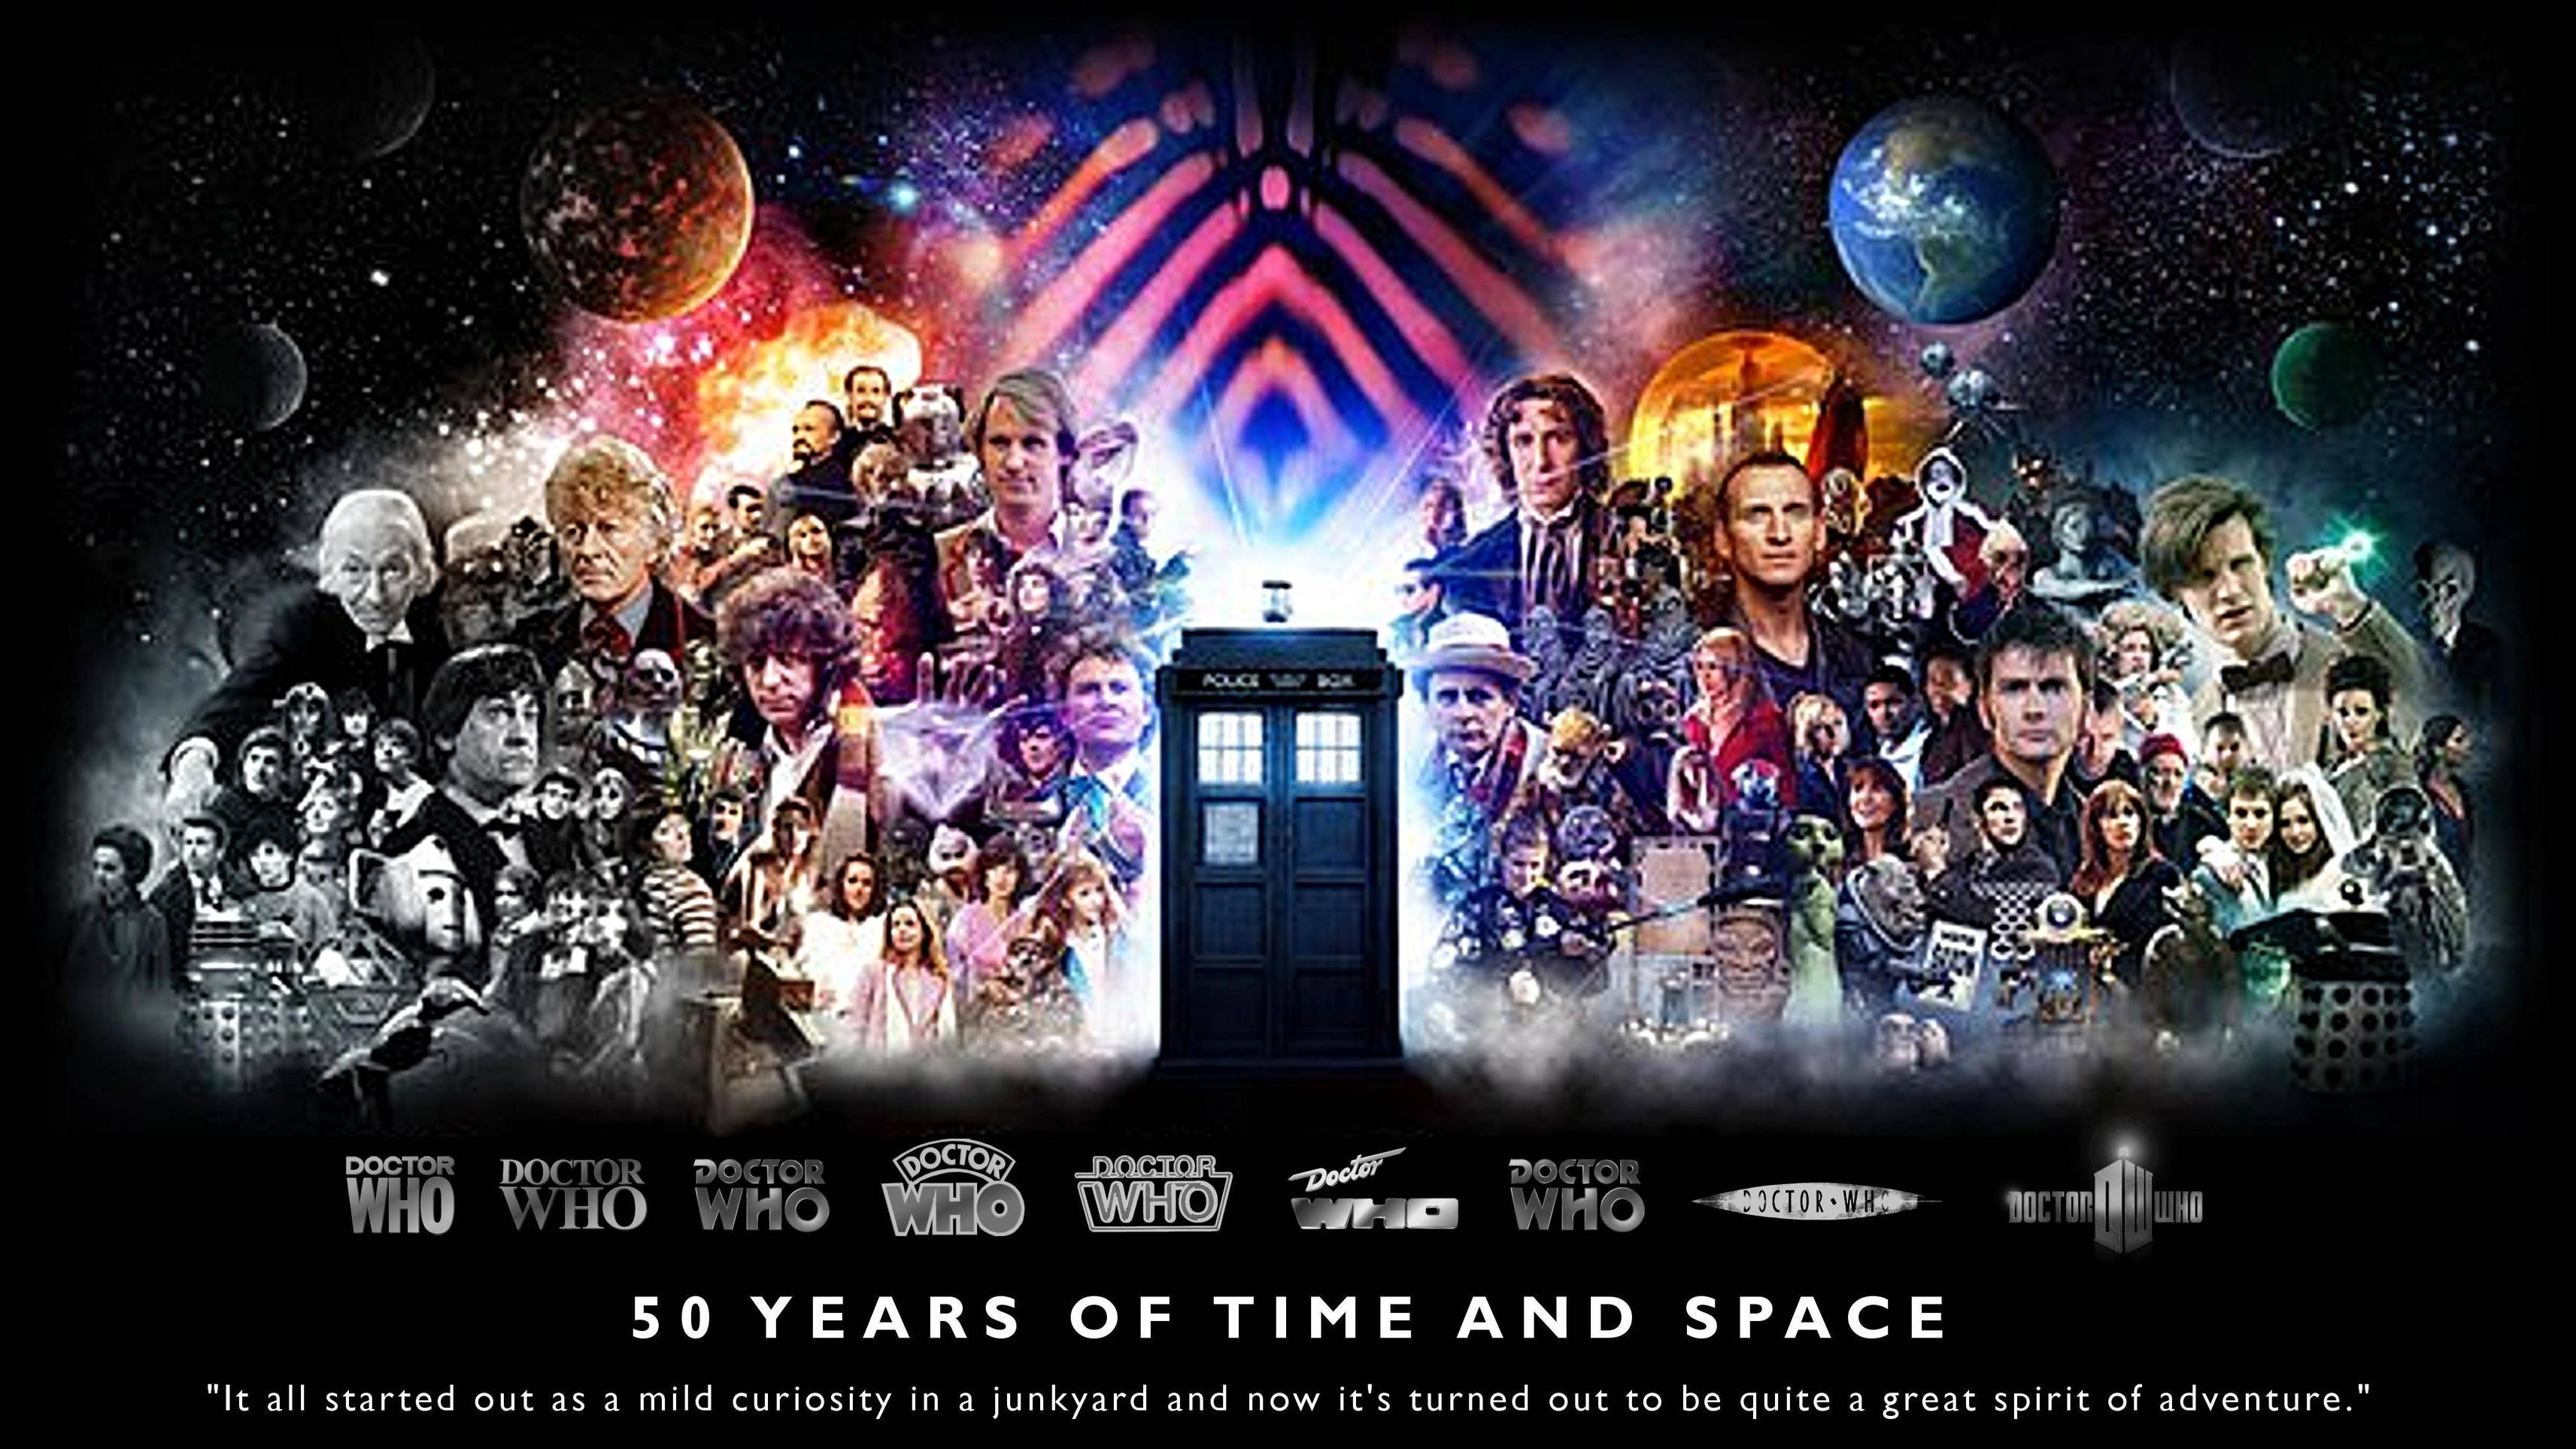 Doctor Who 50th Anniversary!